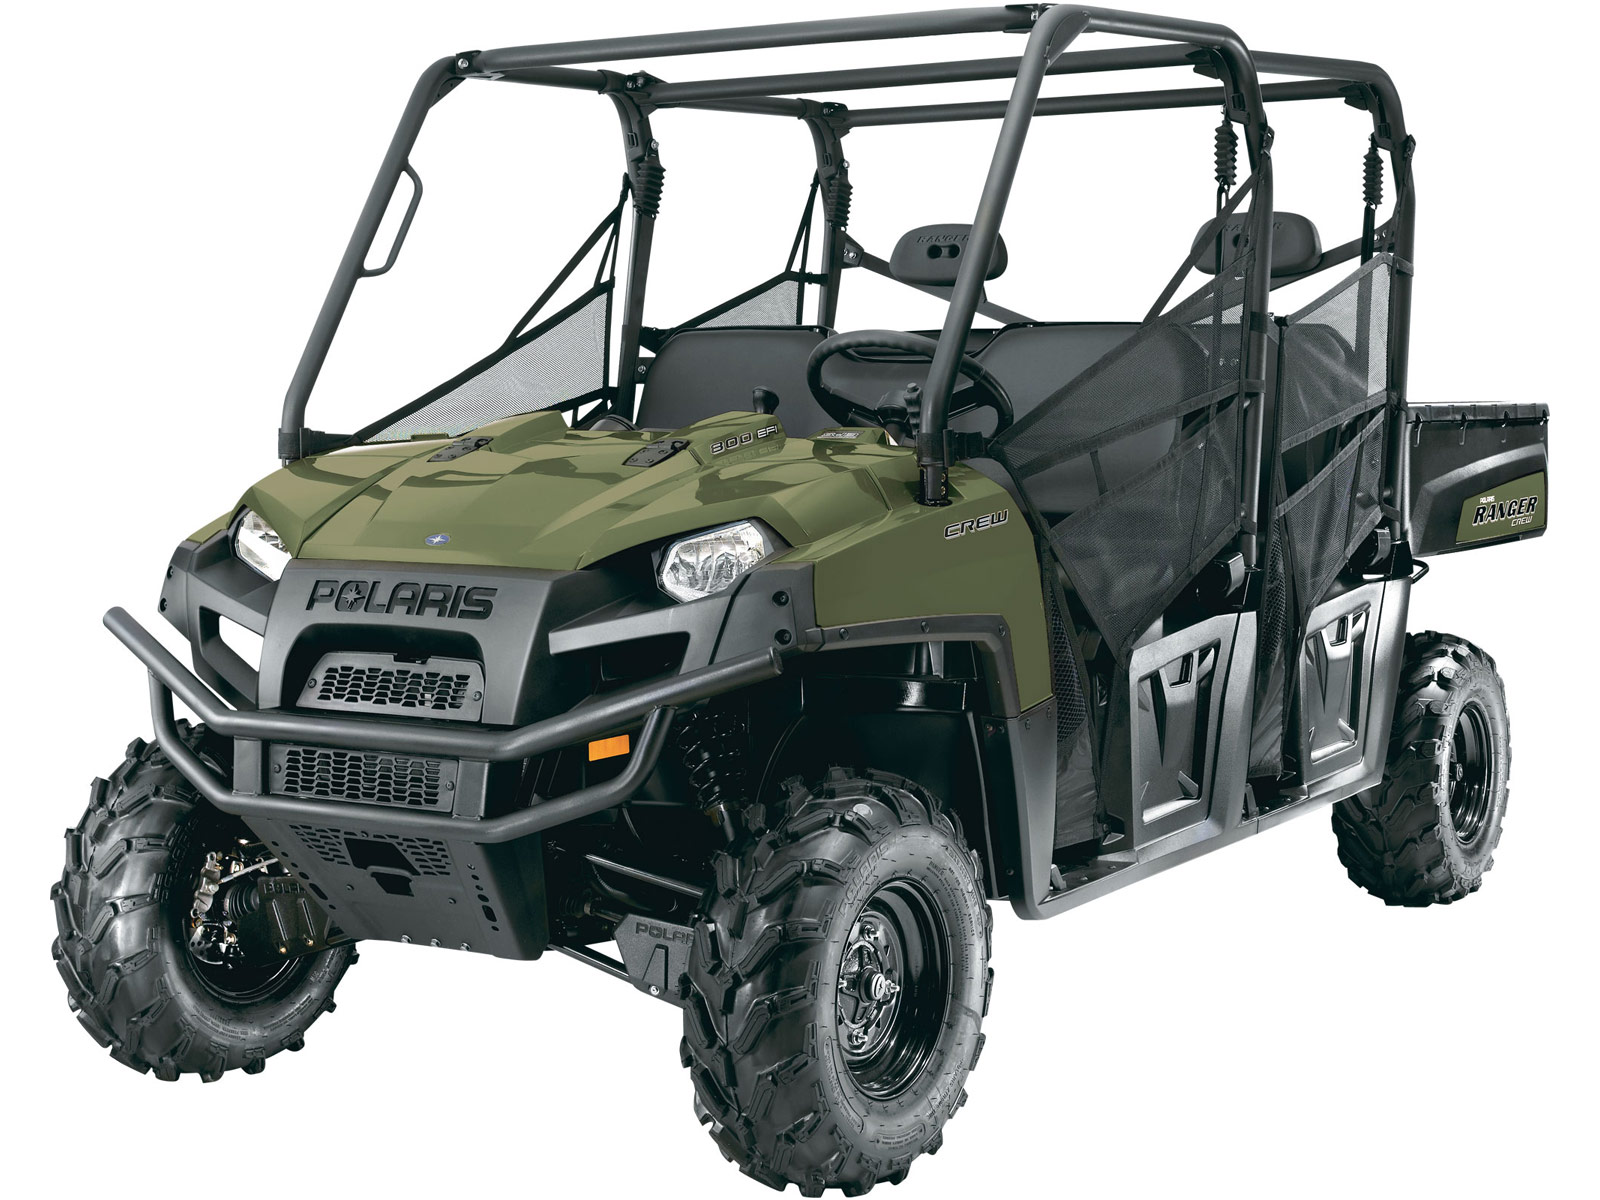 2012 polaris ranger crew 800 usa canadian specs. Black Bedroom Furniture Sets. Home Design Ideas